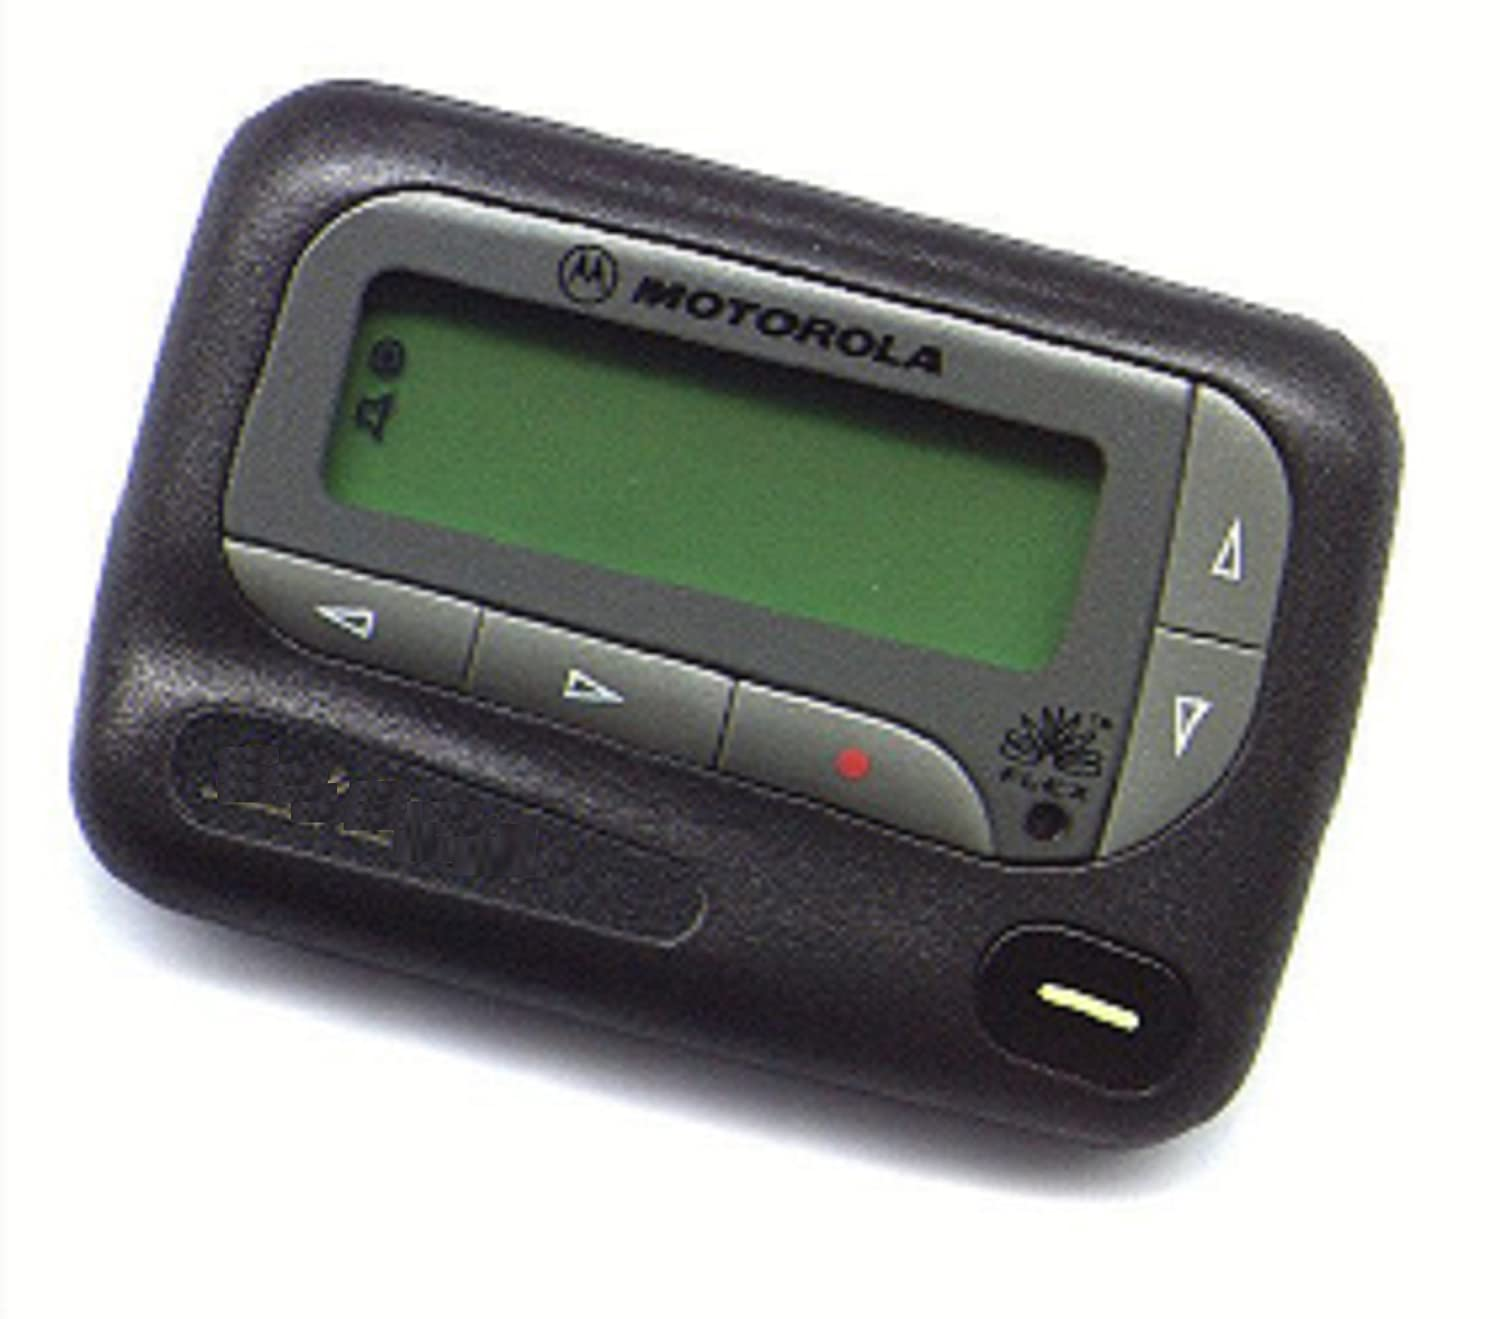 Pagers got scavenged by mobiles